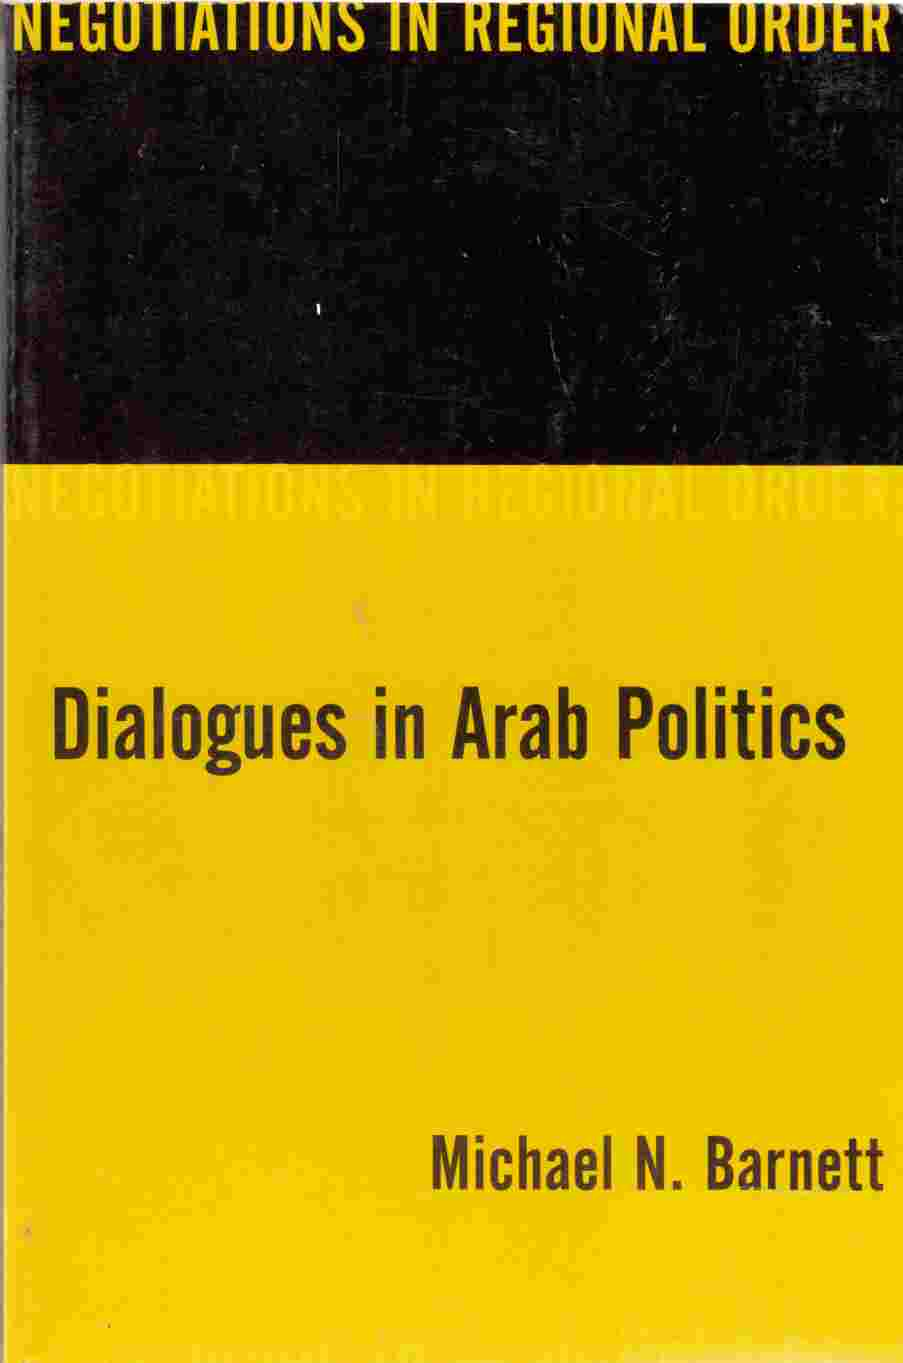 Image for Dialogues in Arab Politics Negotiations in Regional Order